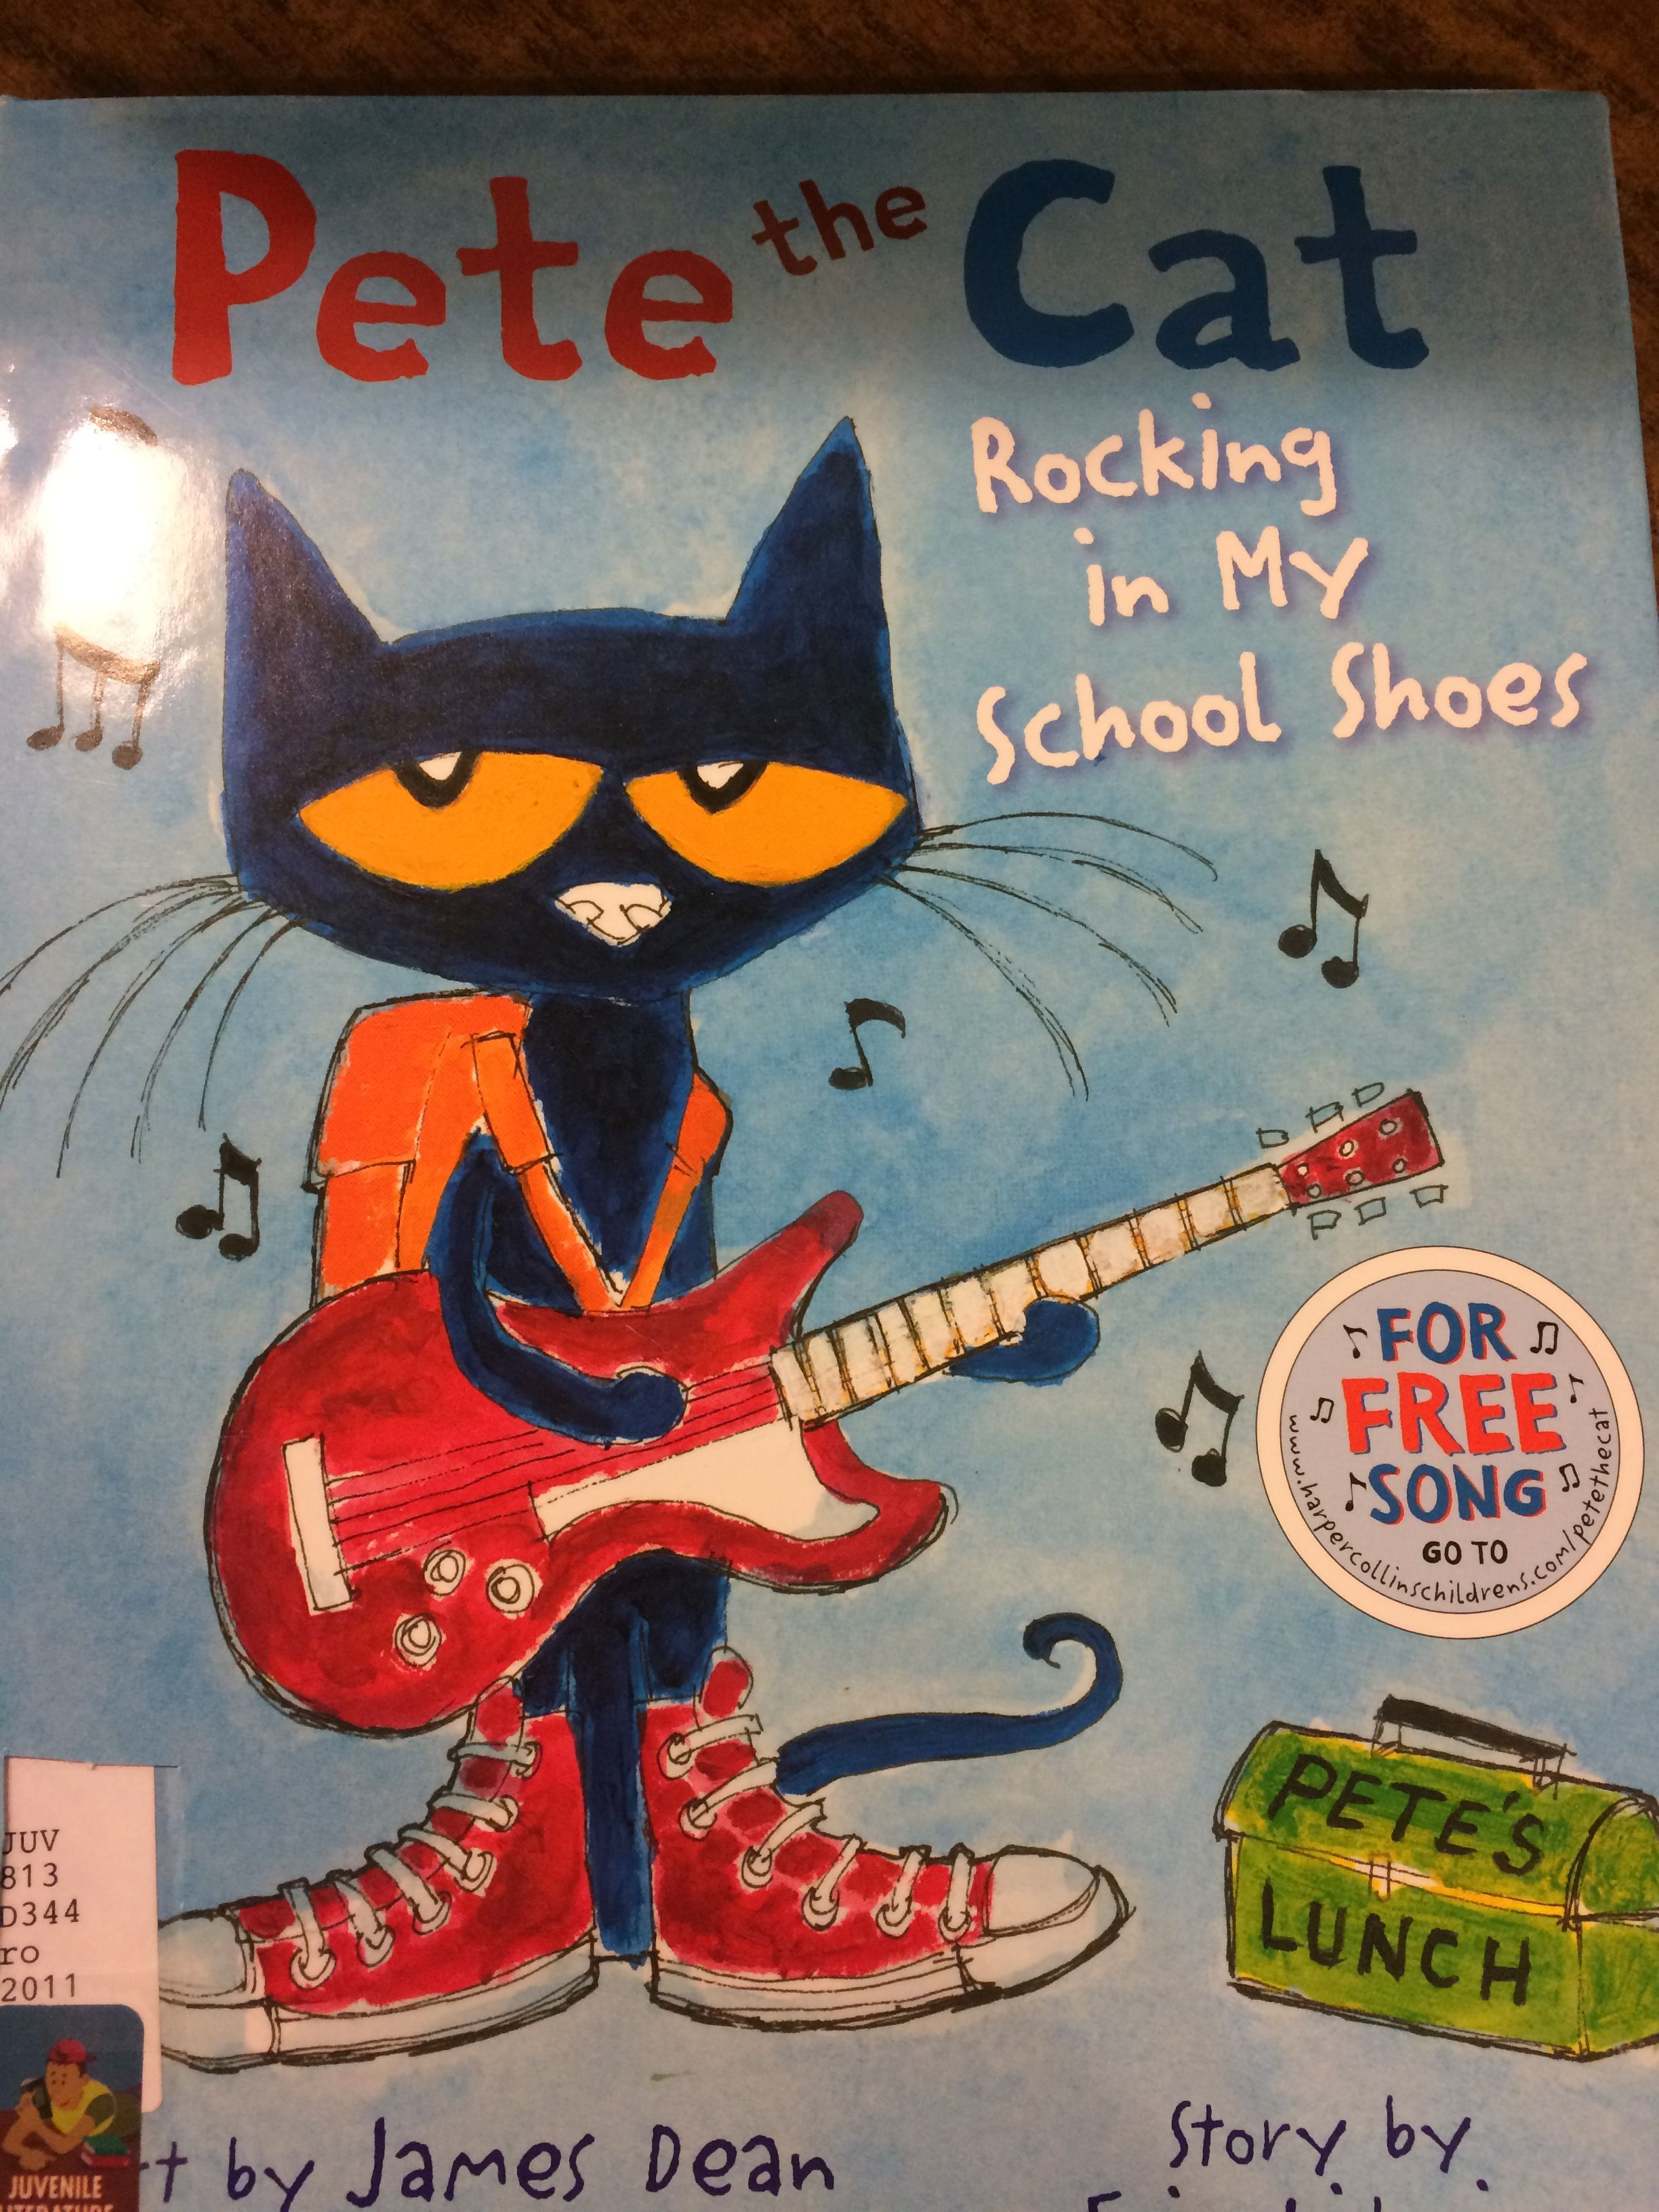 Pete the Cat got some rocking school shoes and is ready to